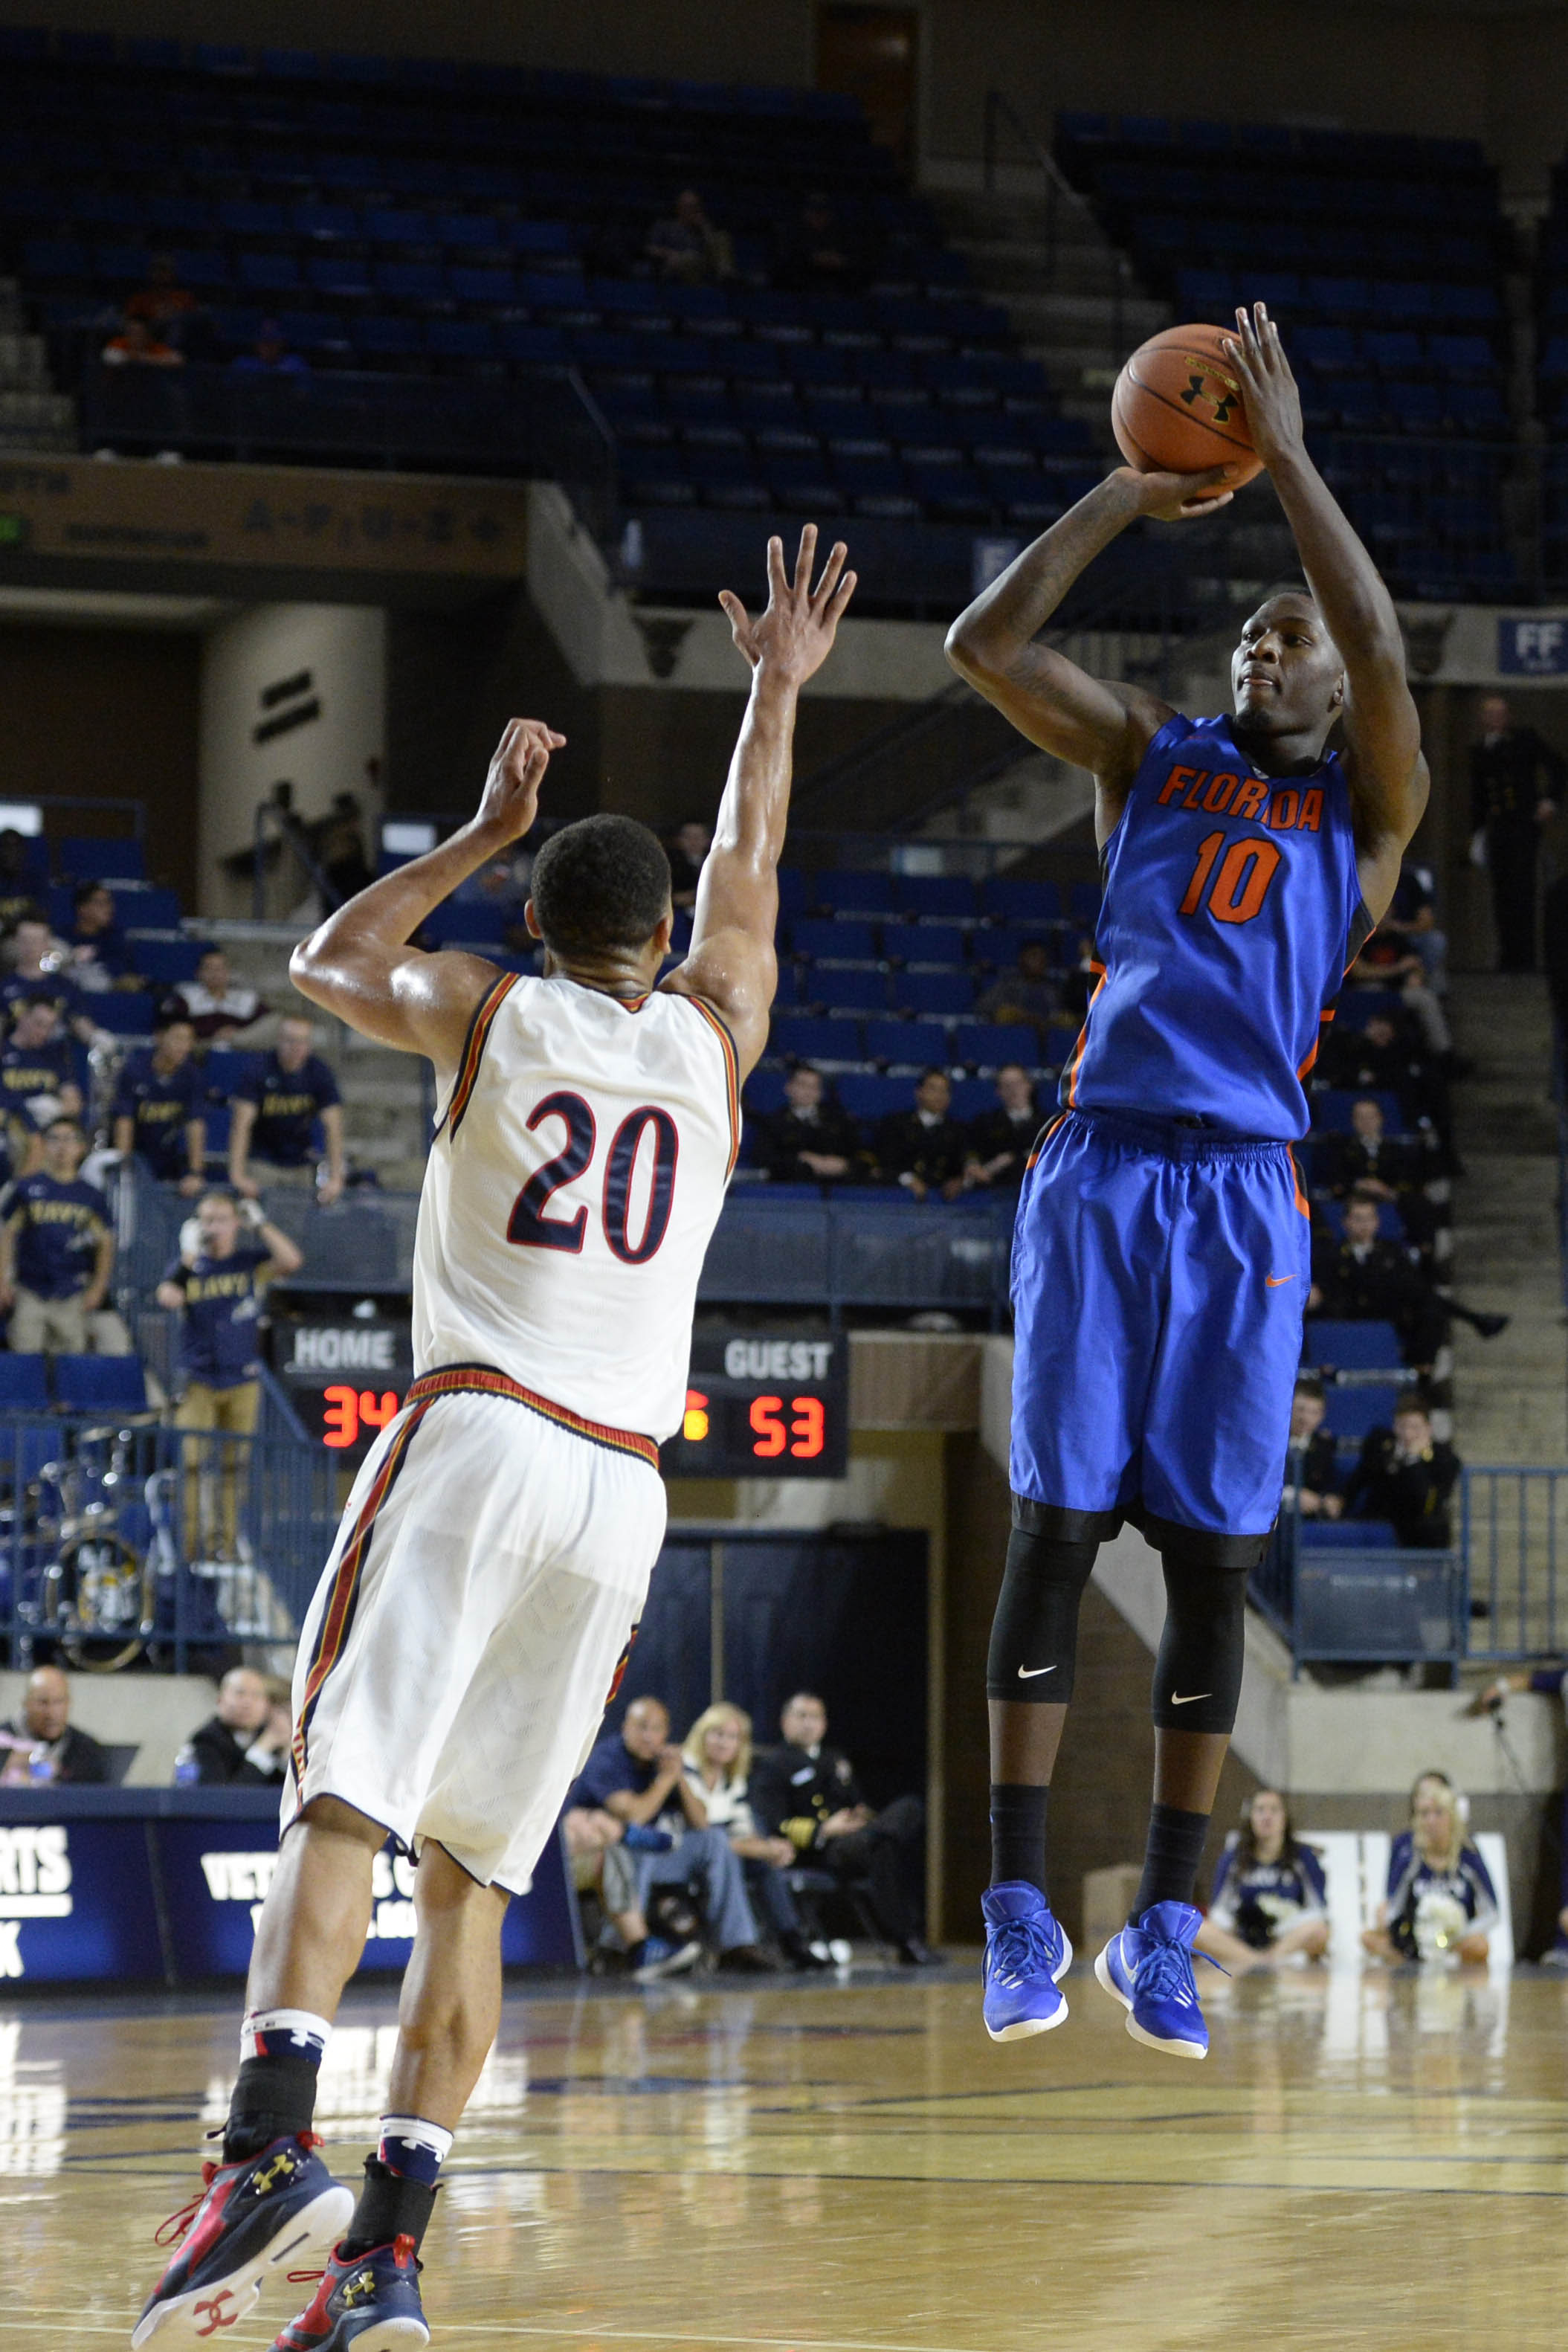 PREVIEW: UF Men's Basketball Team Hosts North Carolina A&T